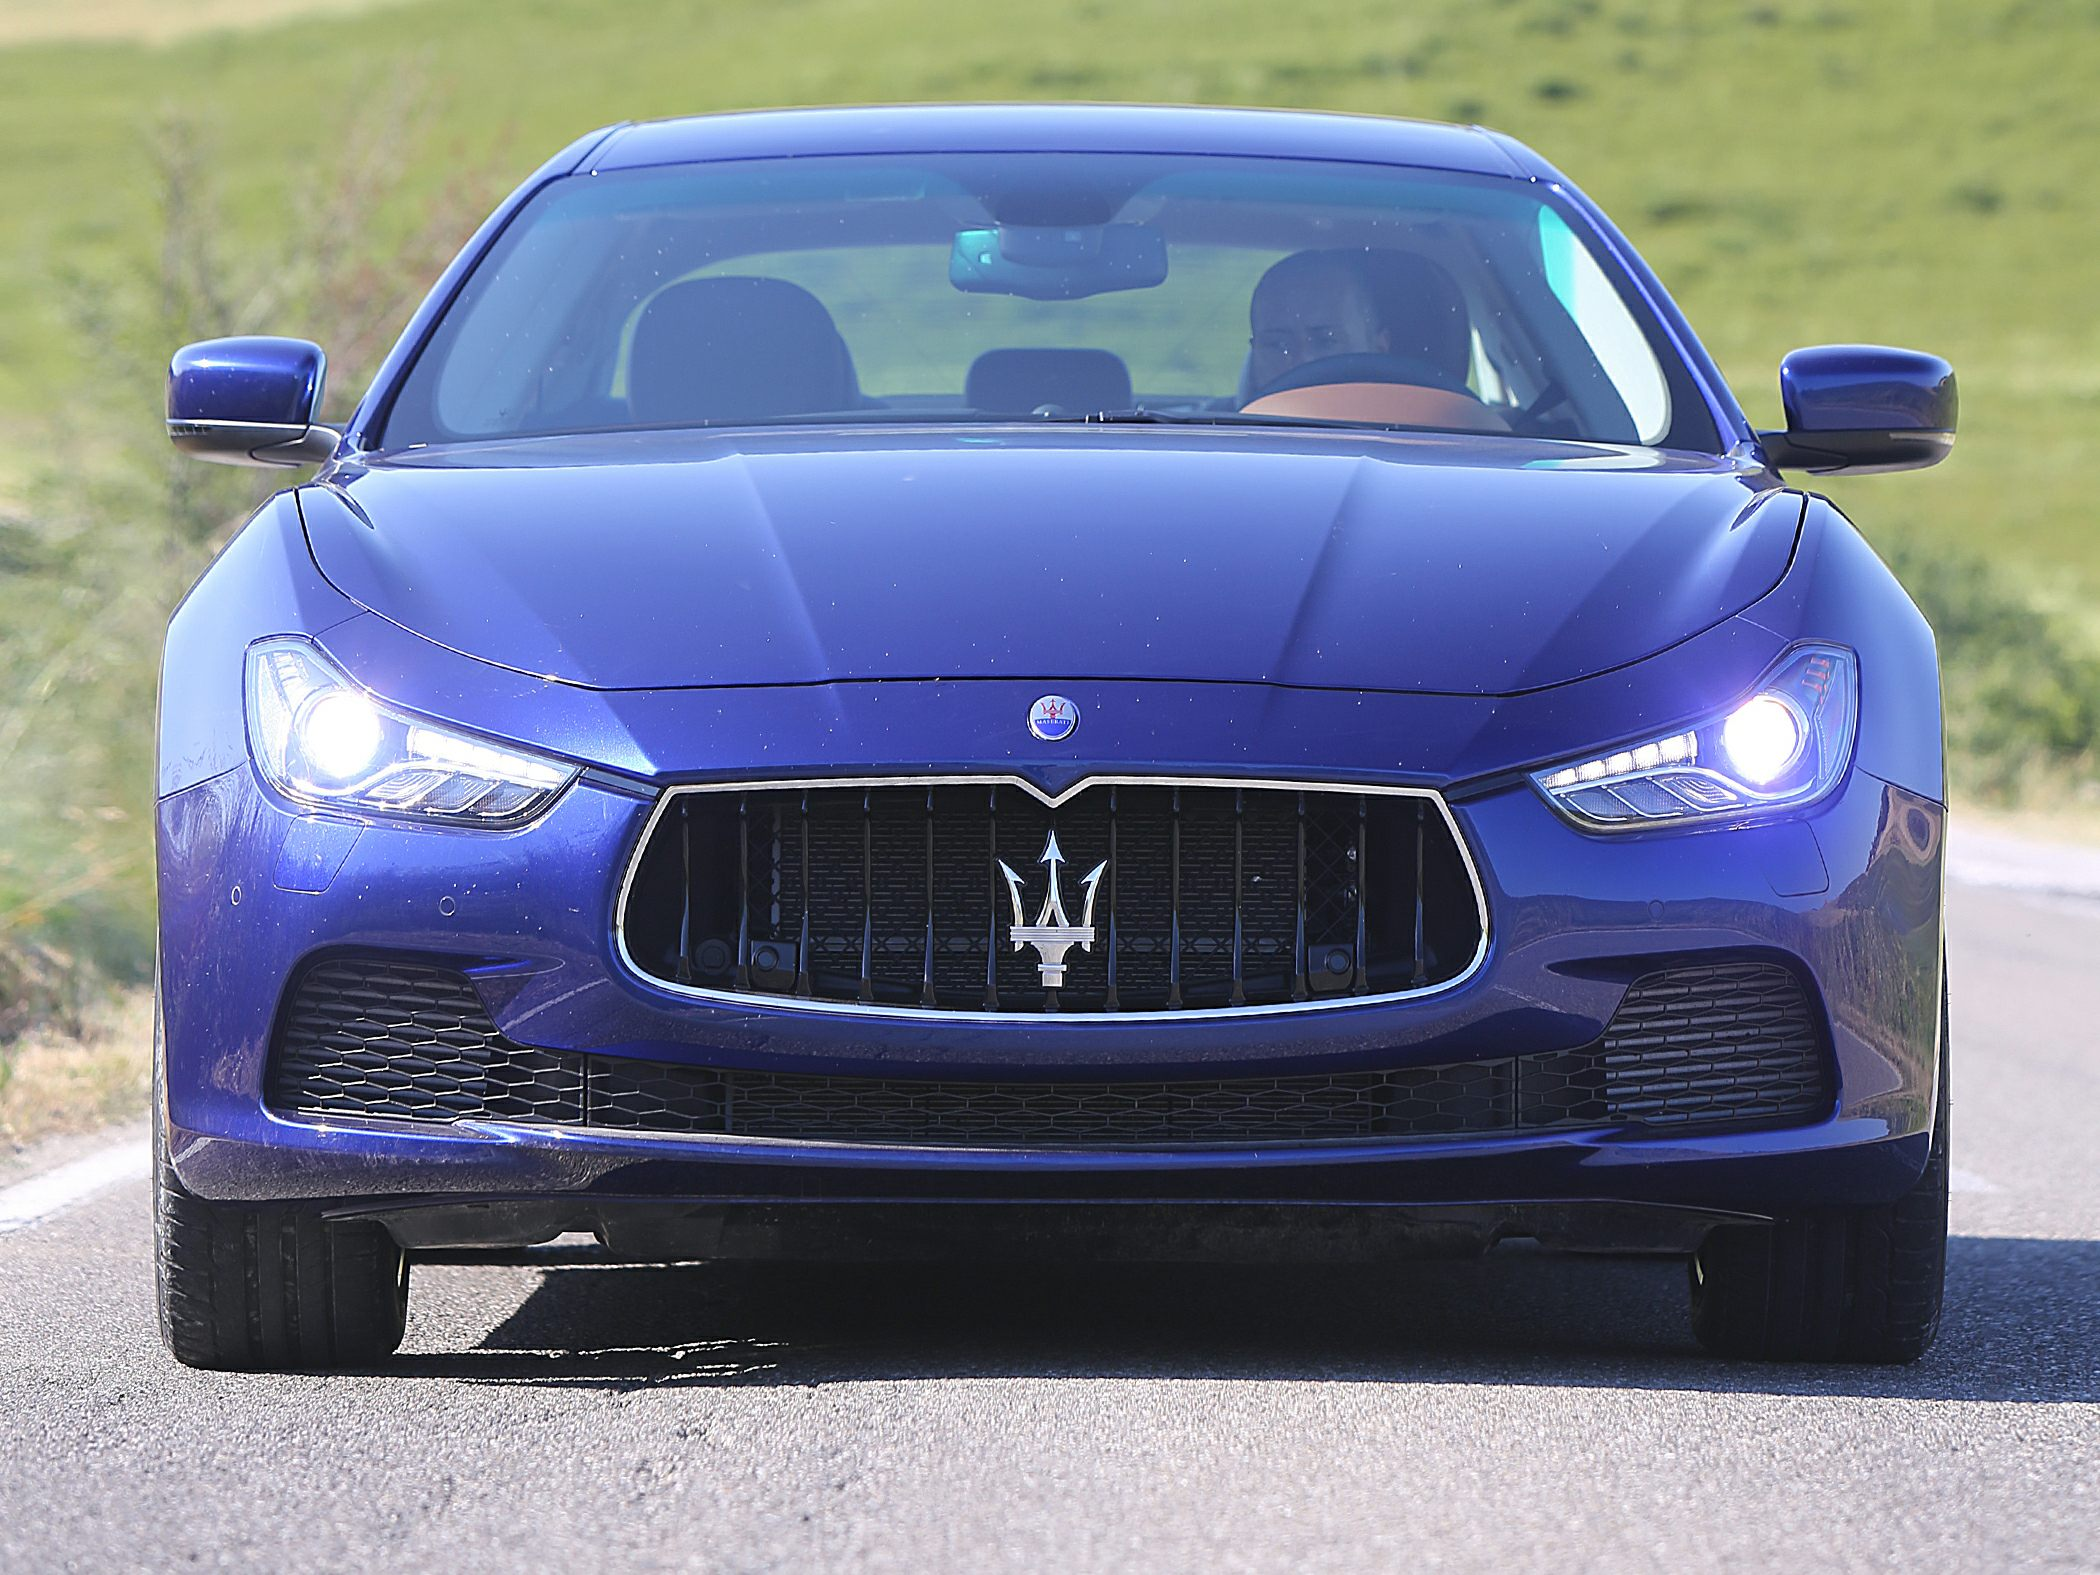 2016 Maserati Ghibli Pictures & Photos - CarsDirect